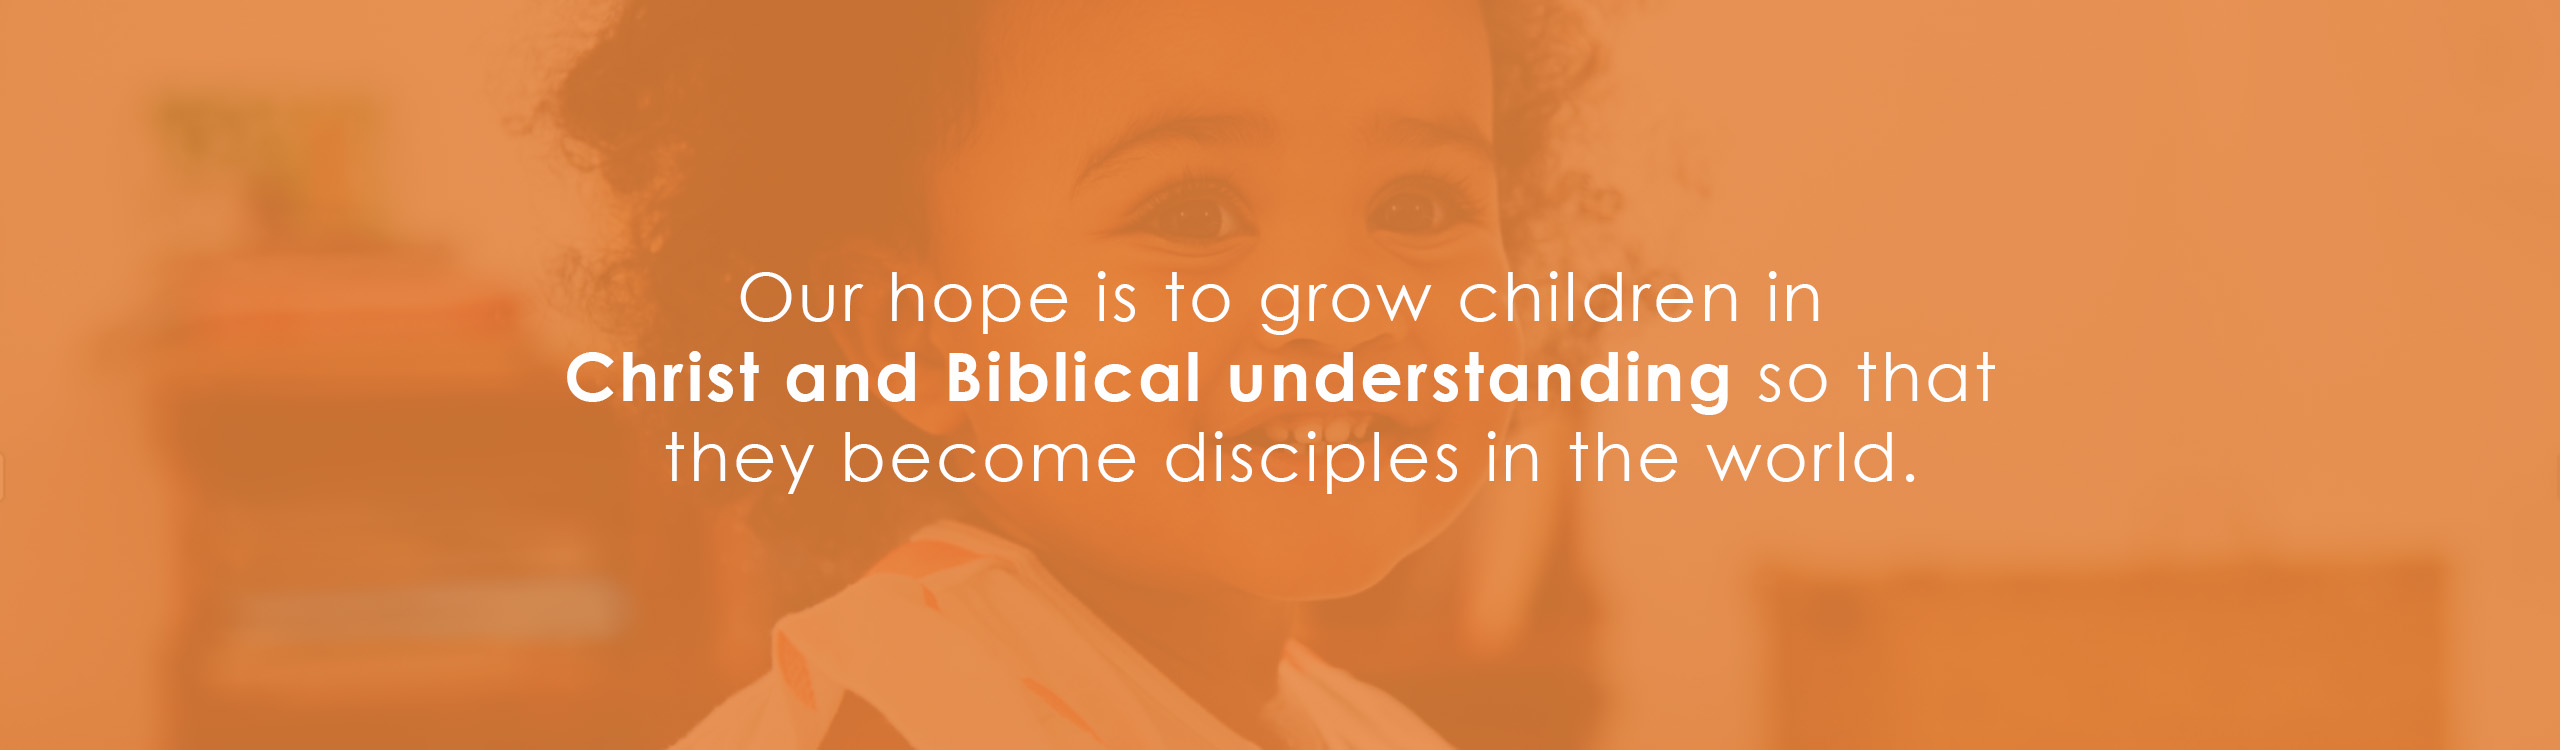 grow children in relationship with God